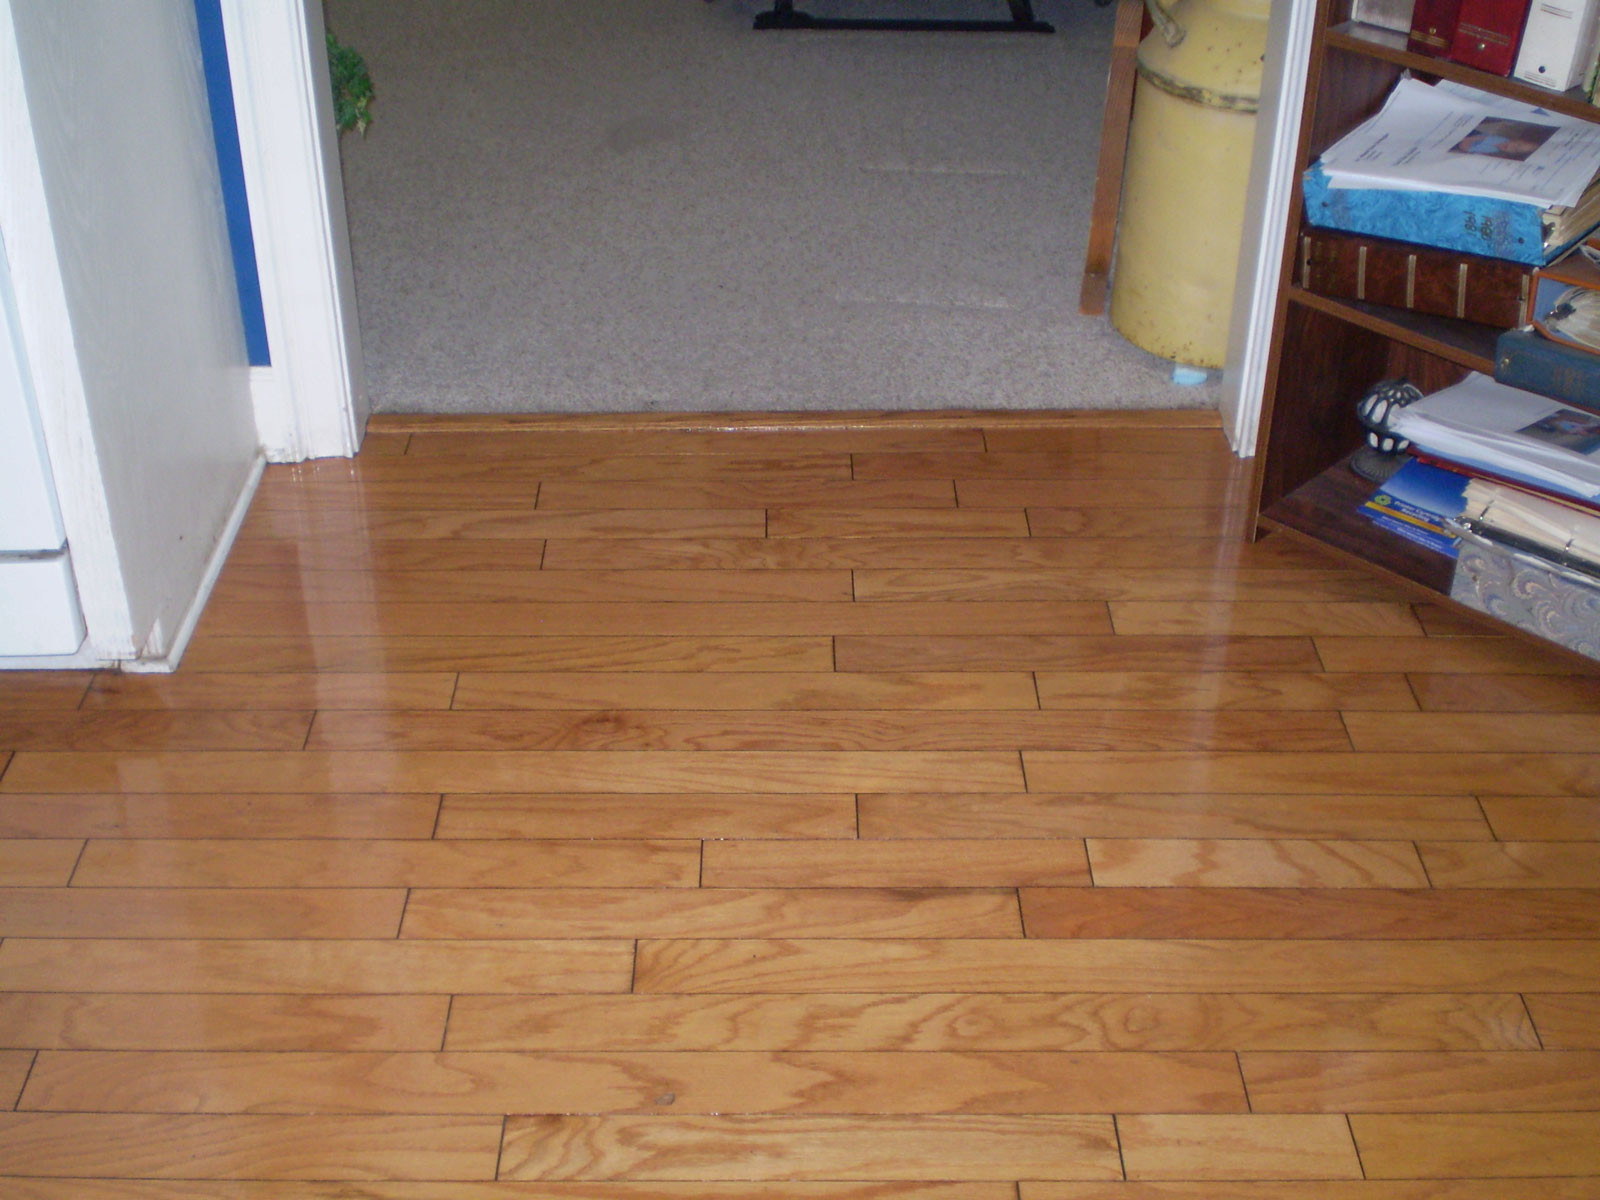 what is average cost to refinish hardwood floors of hardwood floor refinishing richmond va new engineered vinyl plank within hardwood floor refinishing richmond va will refinishingod floors pet stains old without sanding wood with